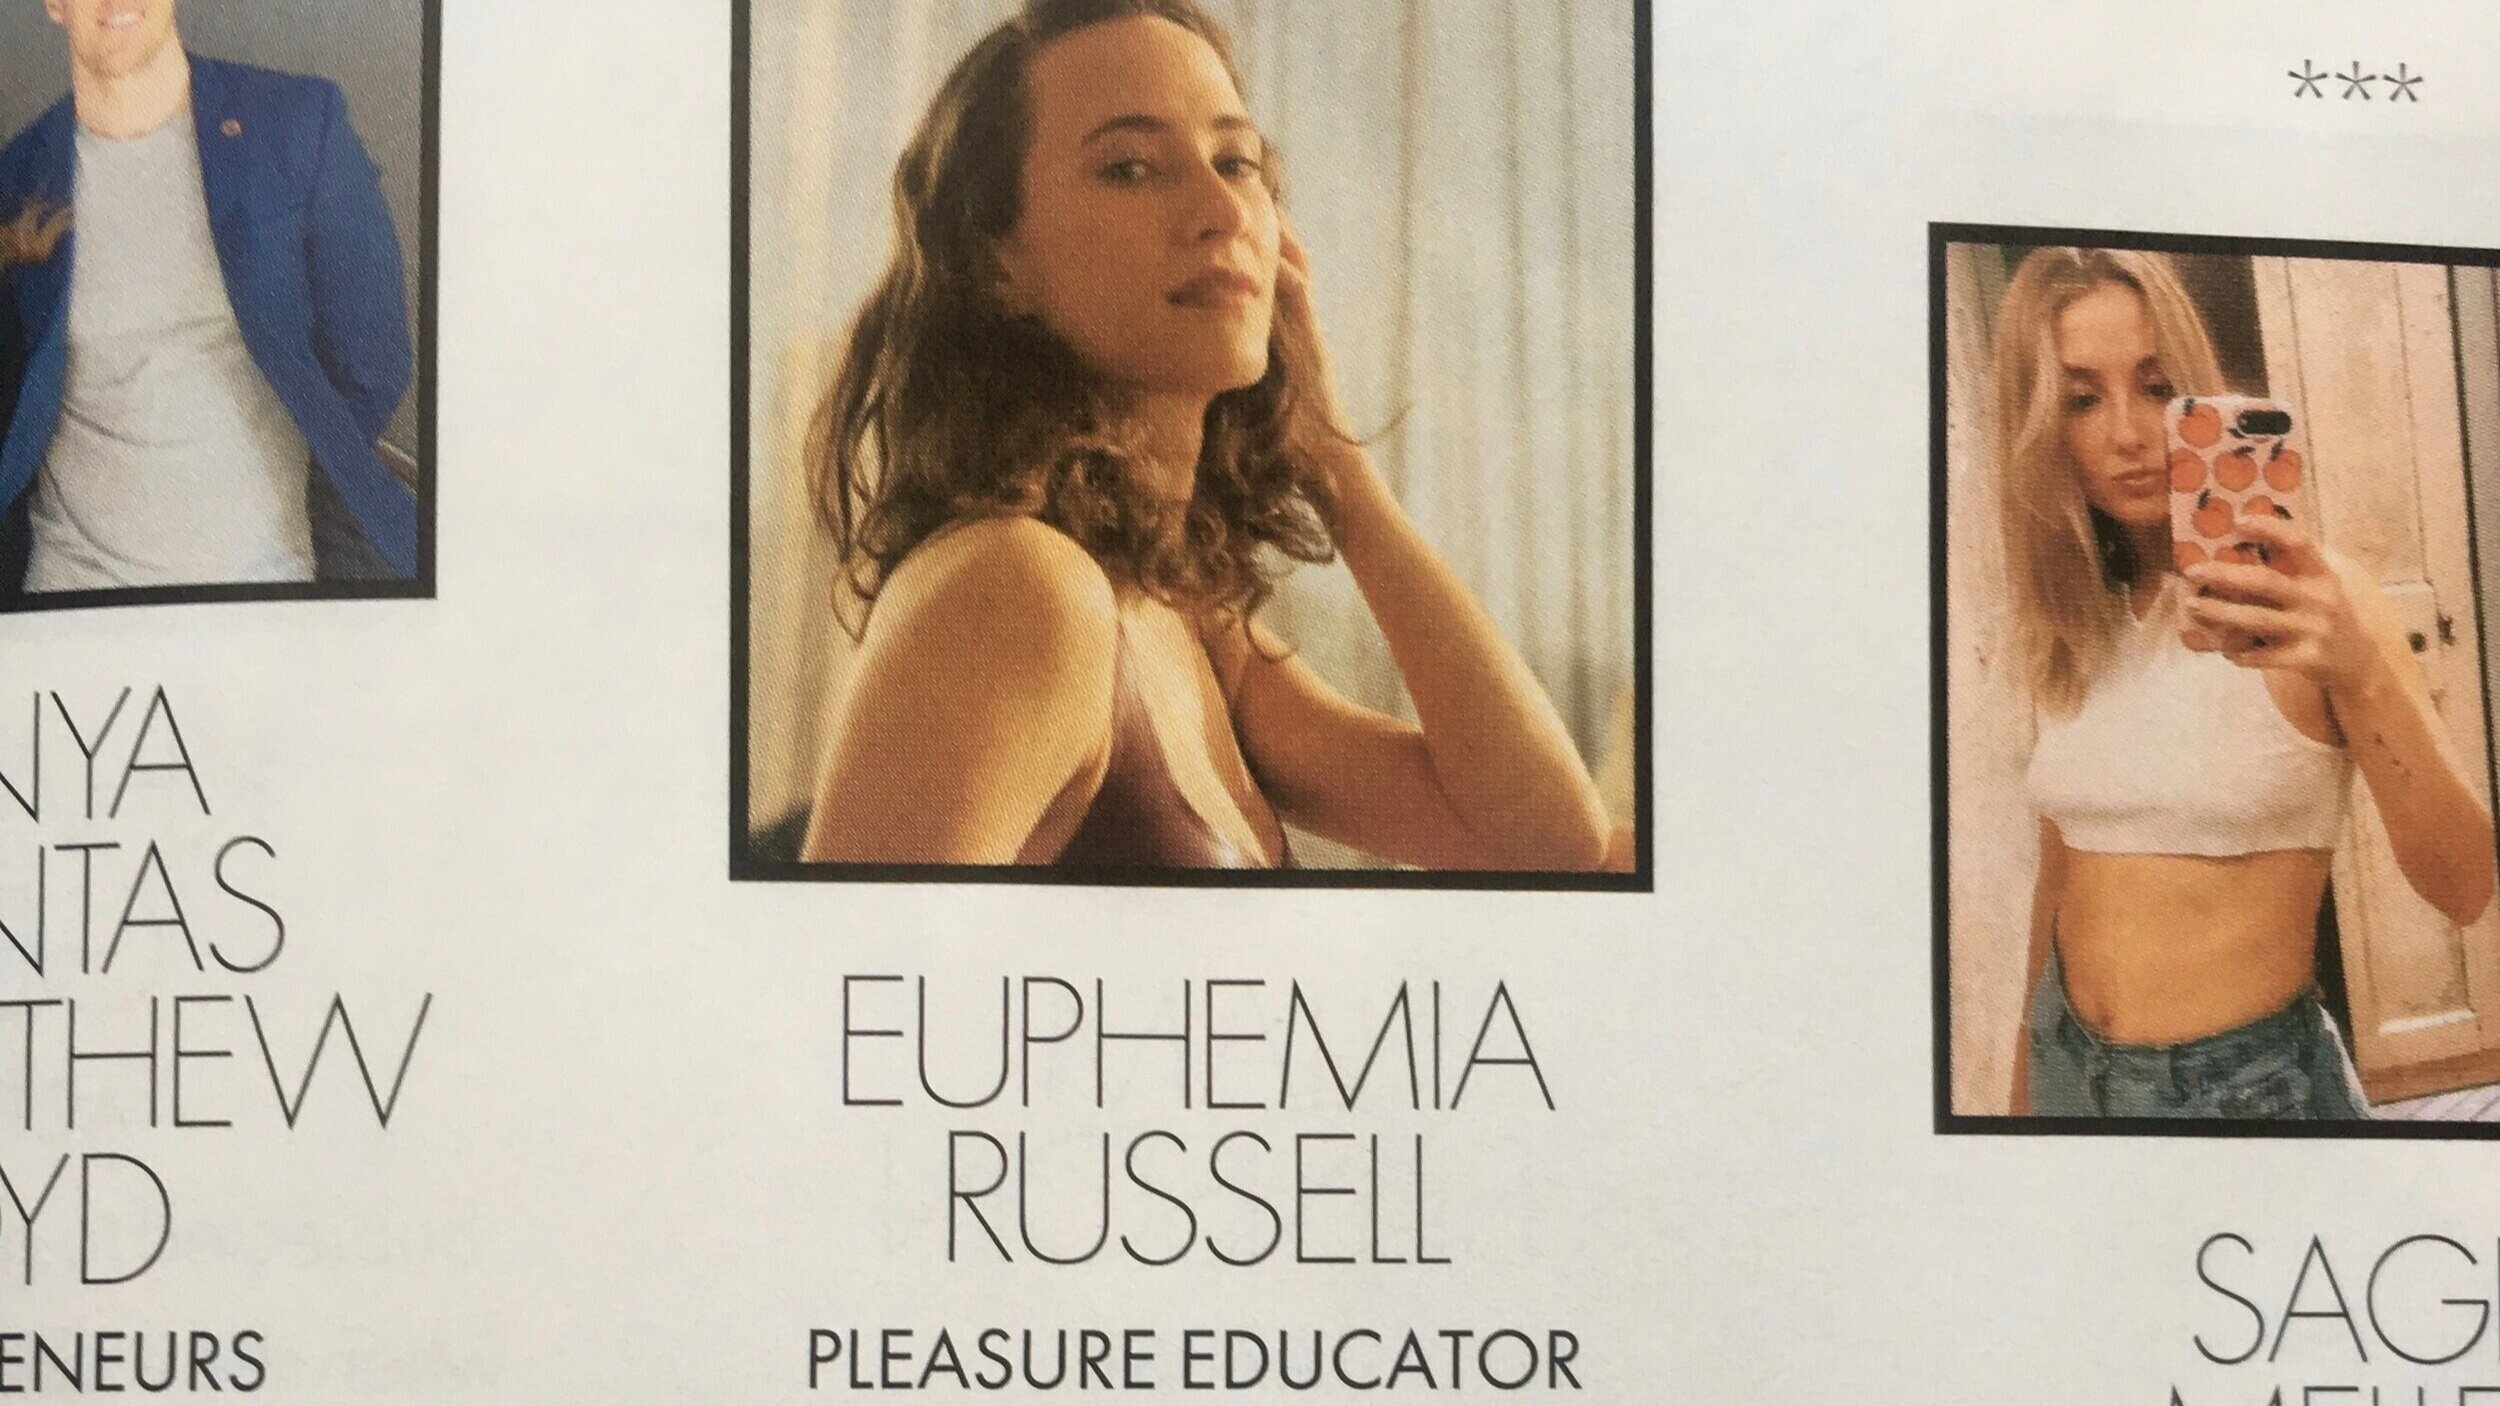 Elle Magazine: 'The ELLE list of changemakers' - Euphemia was included in an inaugural list of changemakers in the Elle Magazine Australia's print edition.